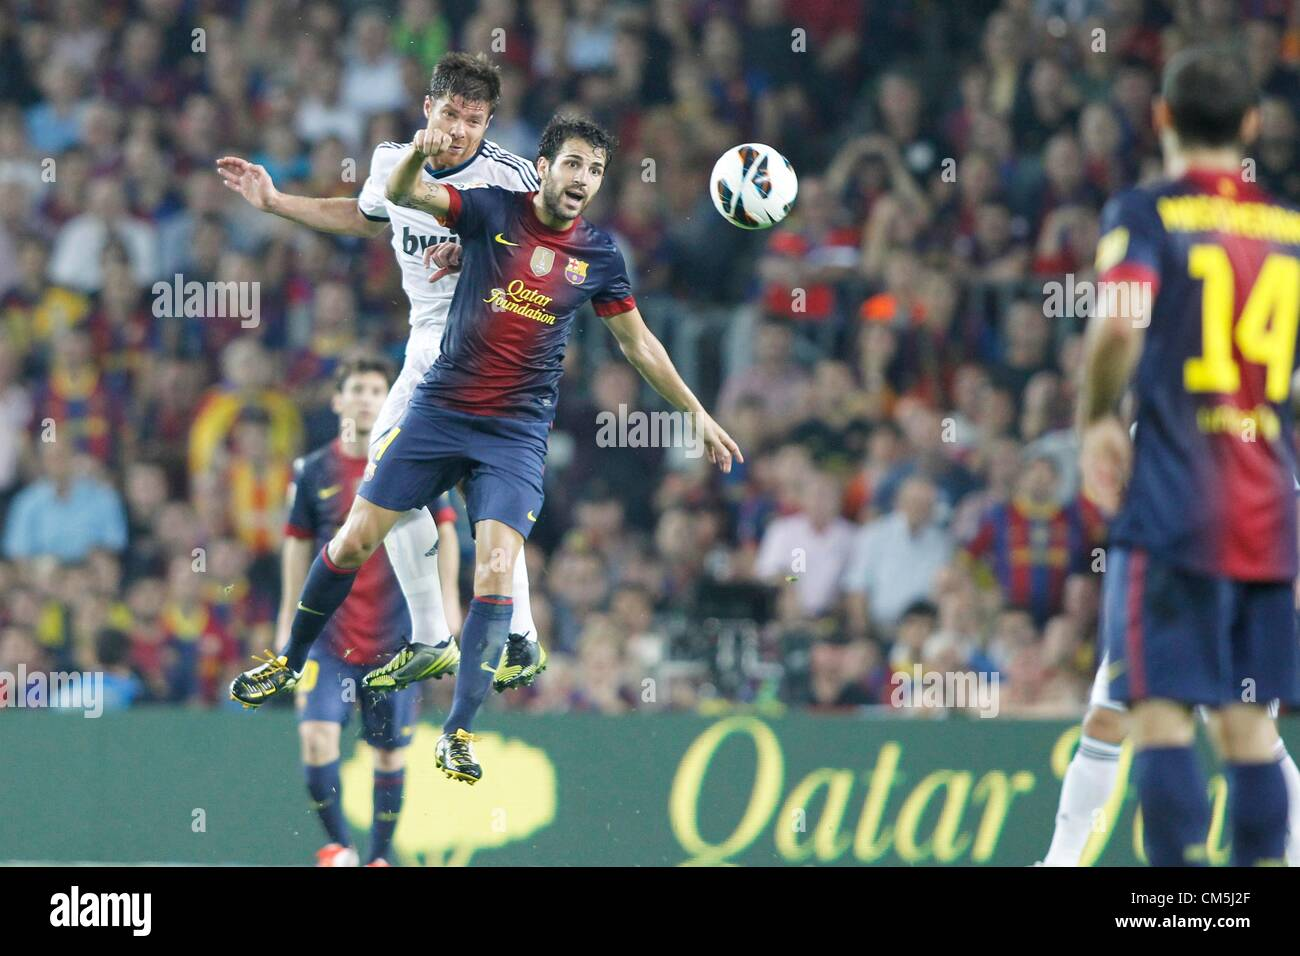 0f033f8376f Xabi Alonso And Cesc Fabregas Stock Photos   Xabi Alonso And Cesc ...